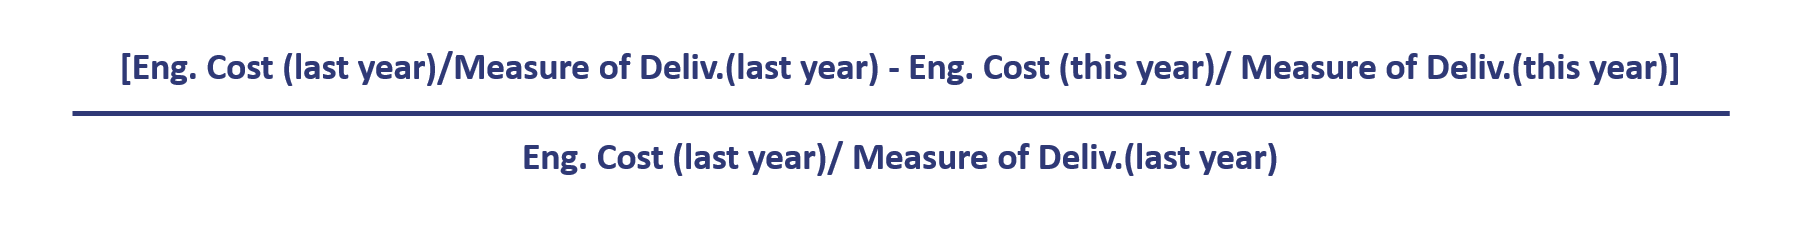 calculate engineering cost vs measure of delivery